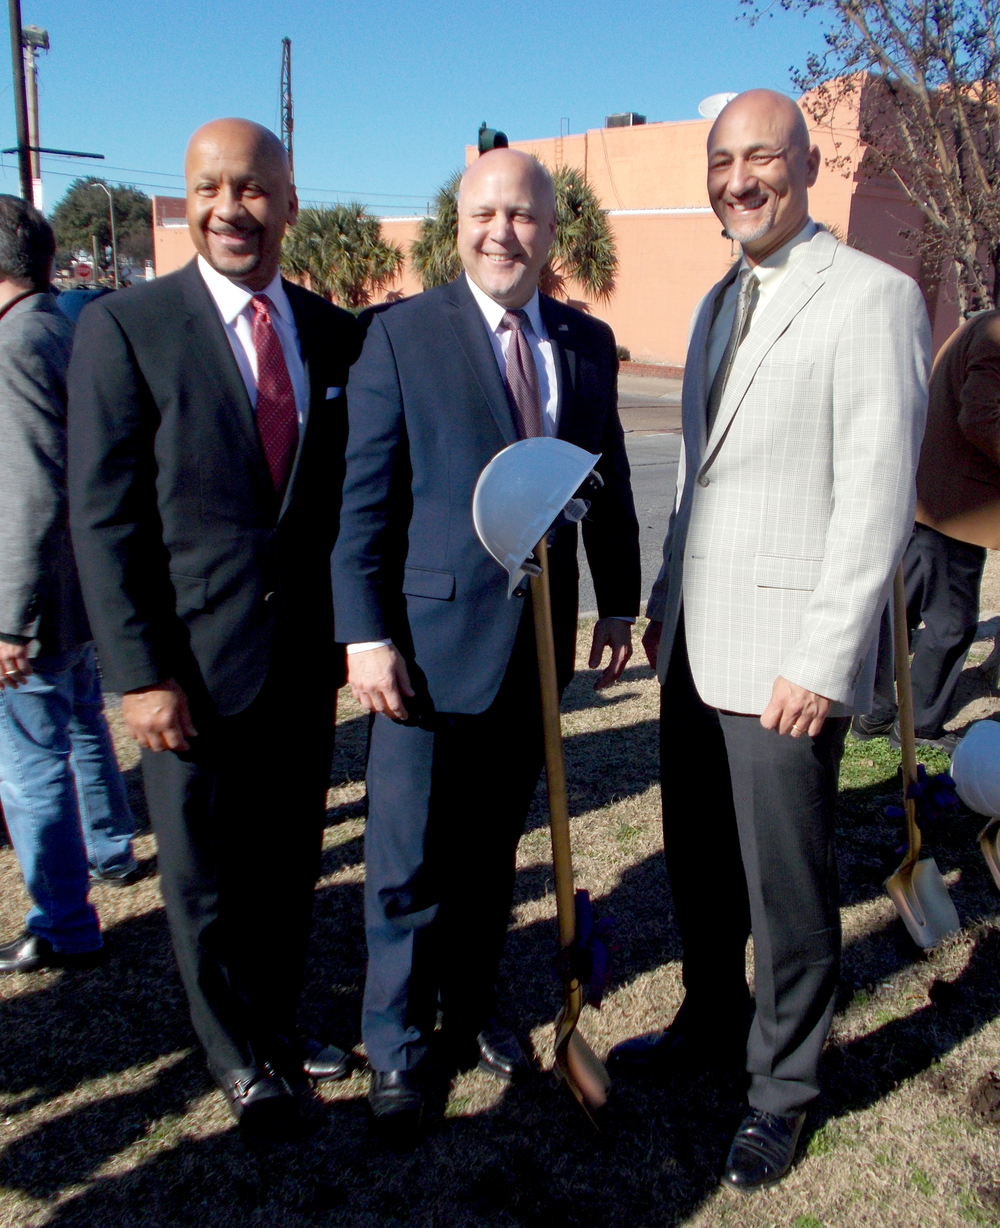 Regional Transit Authority CEO Justin Augustine, from left, New Orleans Mayor Mitch Landrieu, and Infinity Engineering Consultants, LLC Principal Raoul V. Chauvin, III celebrate the ground breaking of the Rampart Streetcar Line at the ceremony on January 28, 2015.